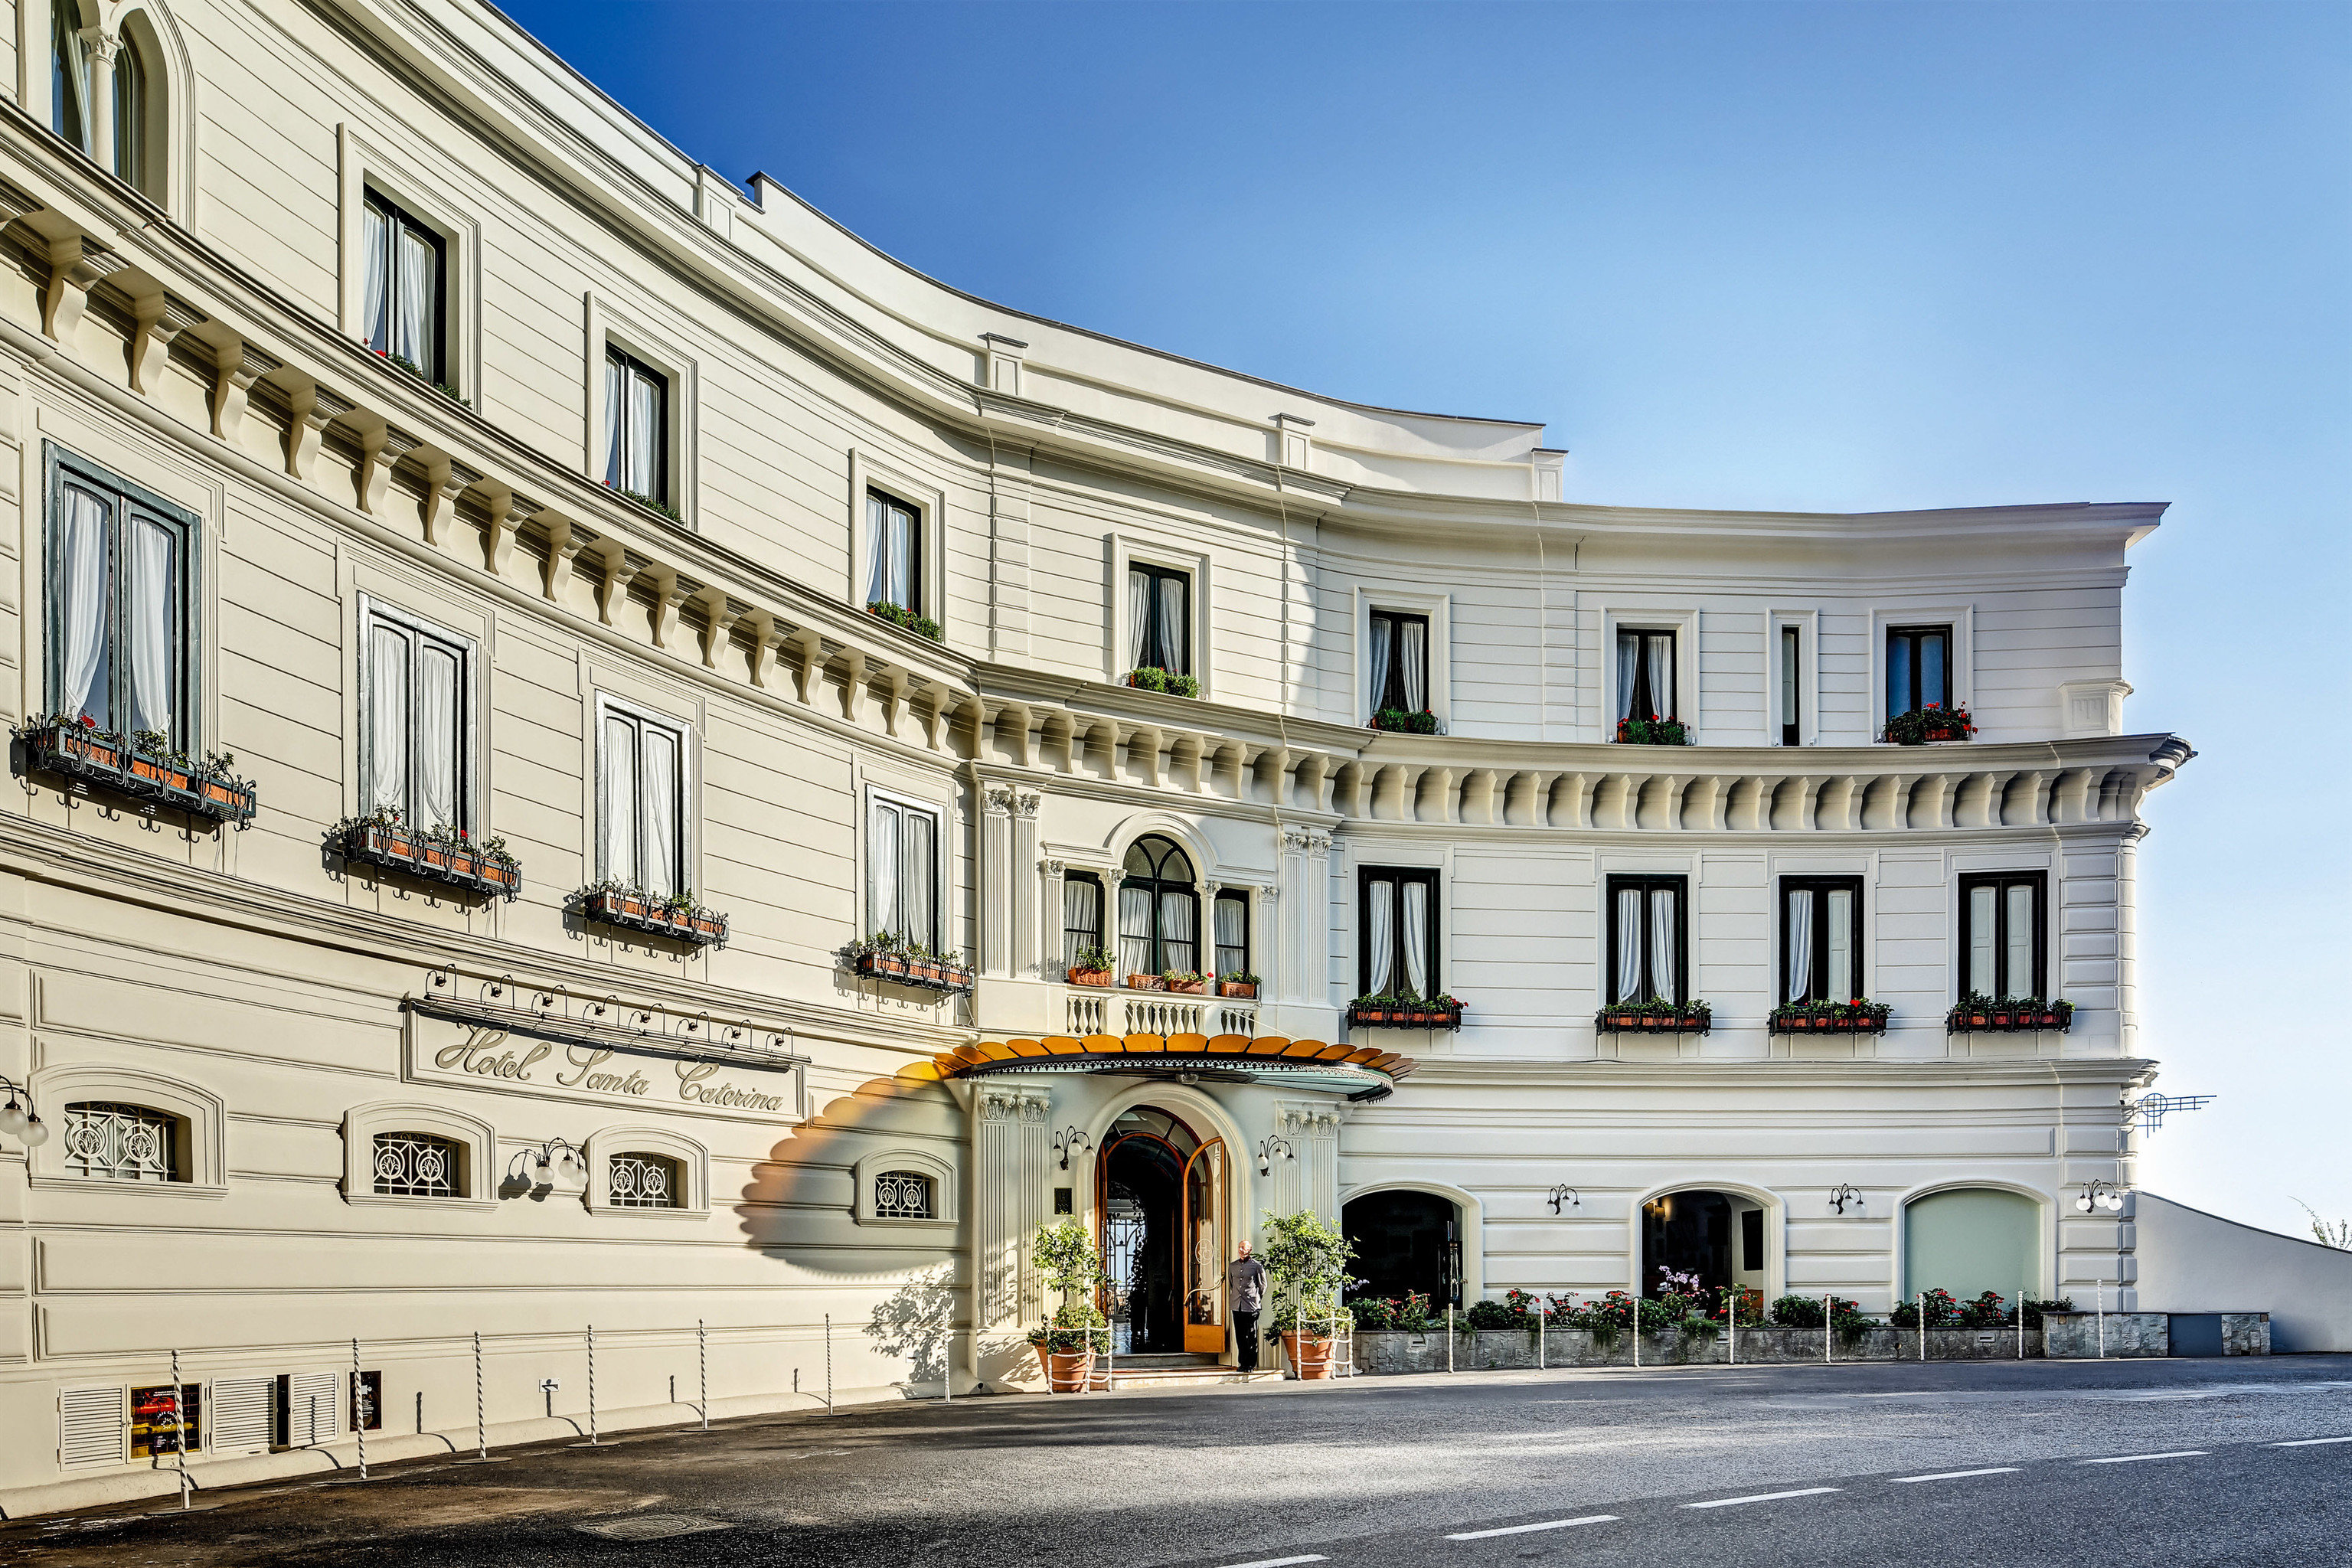 Hotels Romance sky outdoor building classical architecture landmark Architecture palace facade window plaza white real estate estate château town square tourism apartment mansion City government building